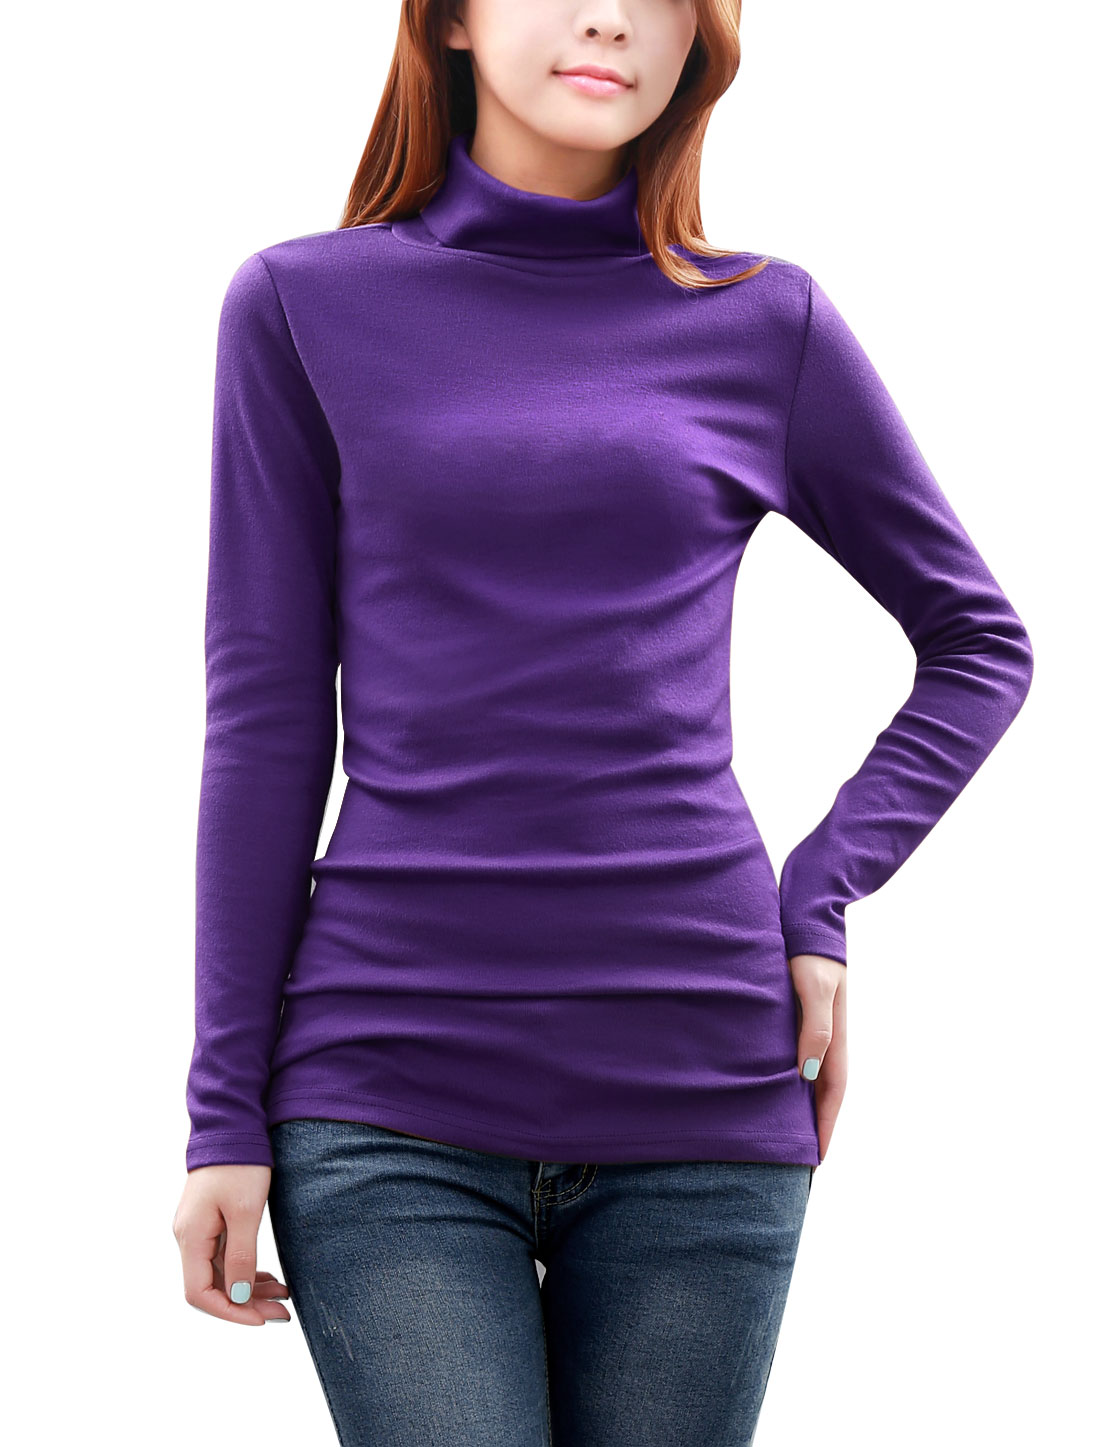 Ladies Sheathy Soft Turtle Neck Straight Cutting Autumn Blouse Purple XL